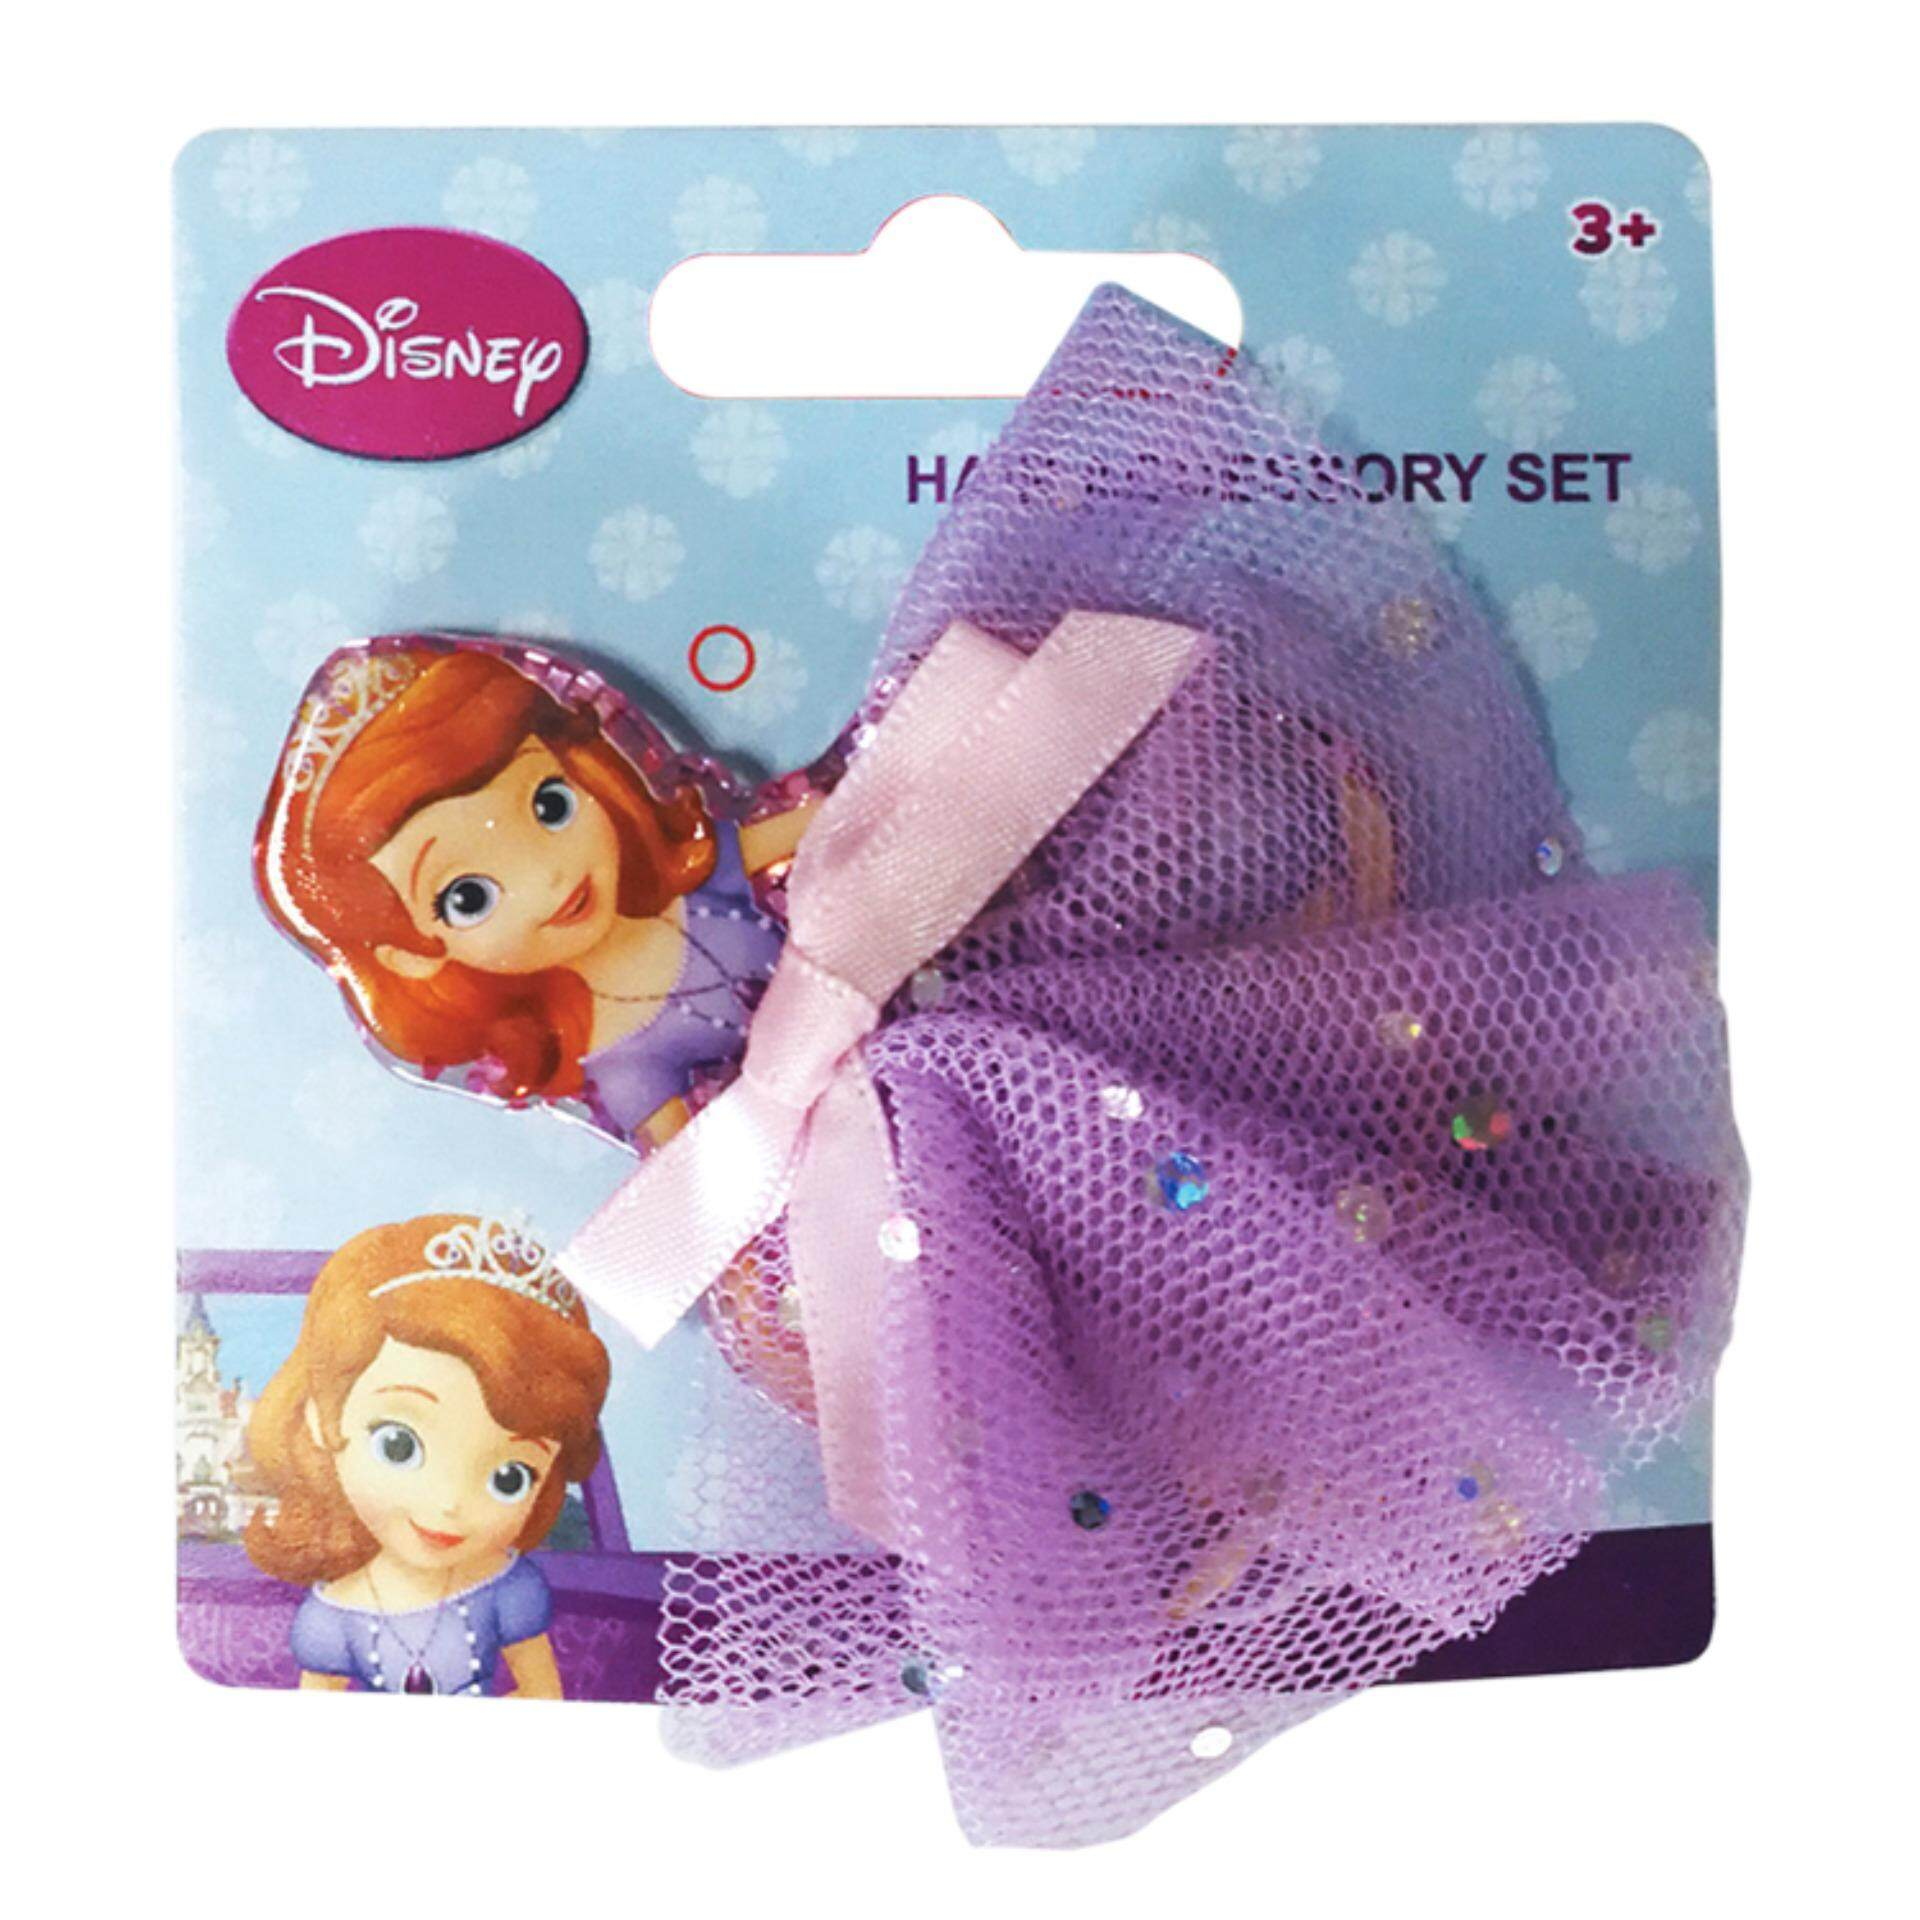 Disney Princess Sofia Girls Hair Section Hair Clips Duckbill Clips - Purple Colour